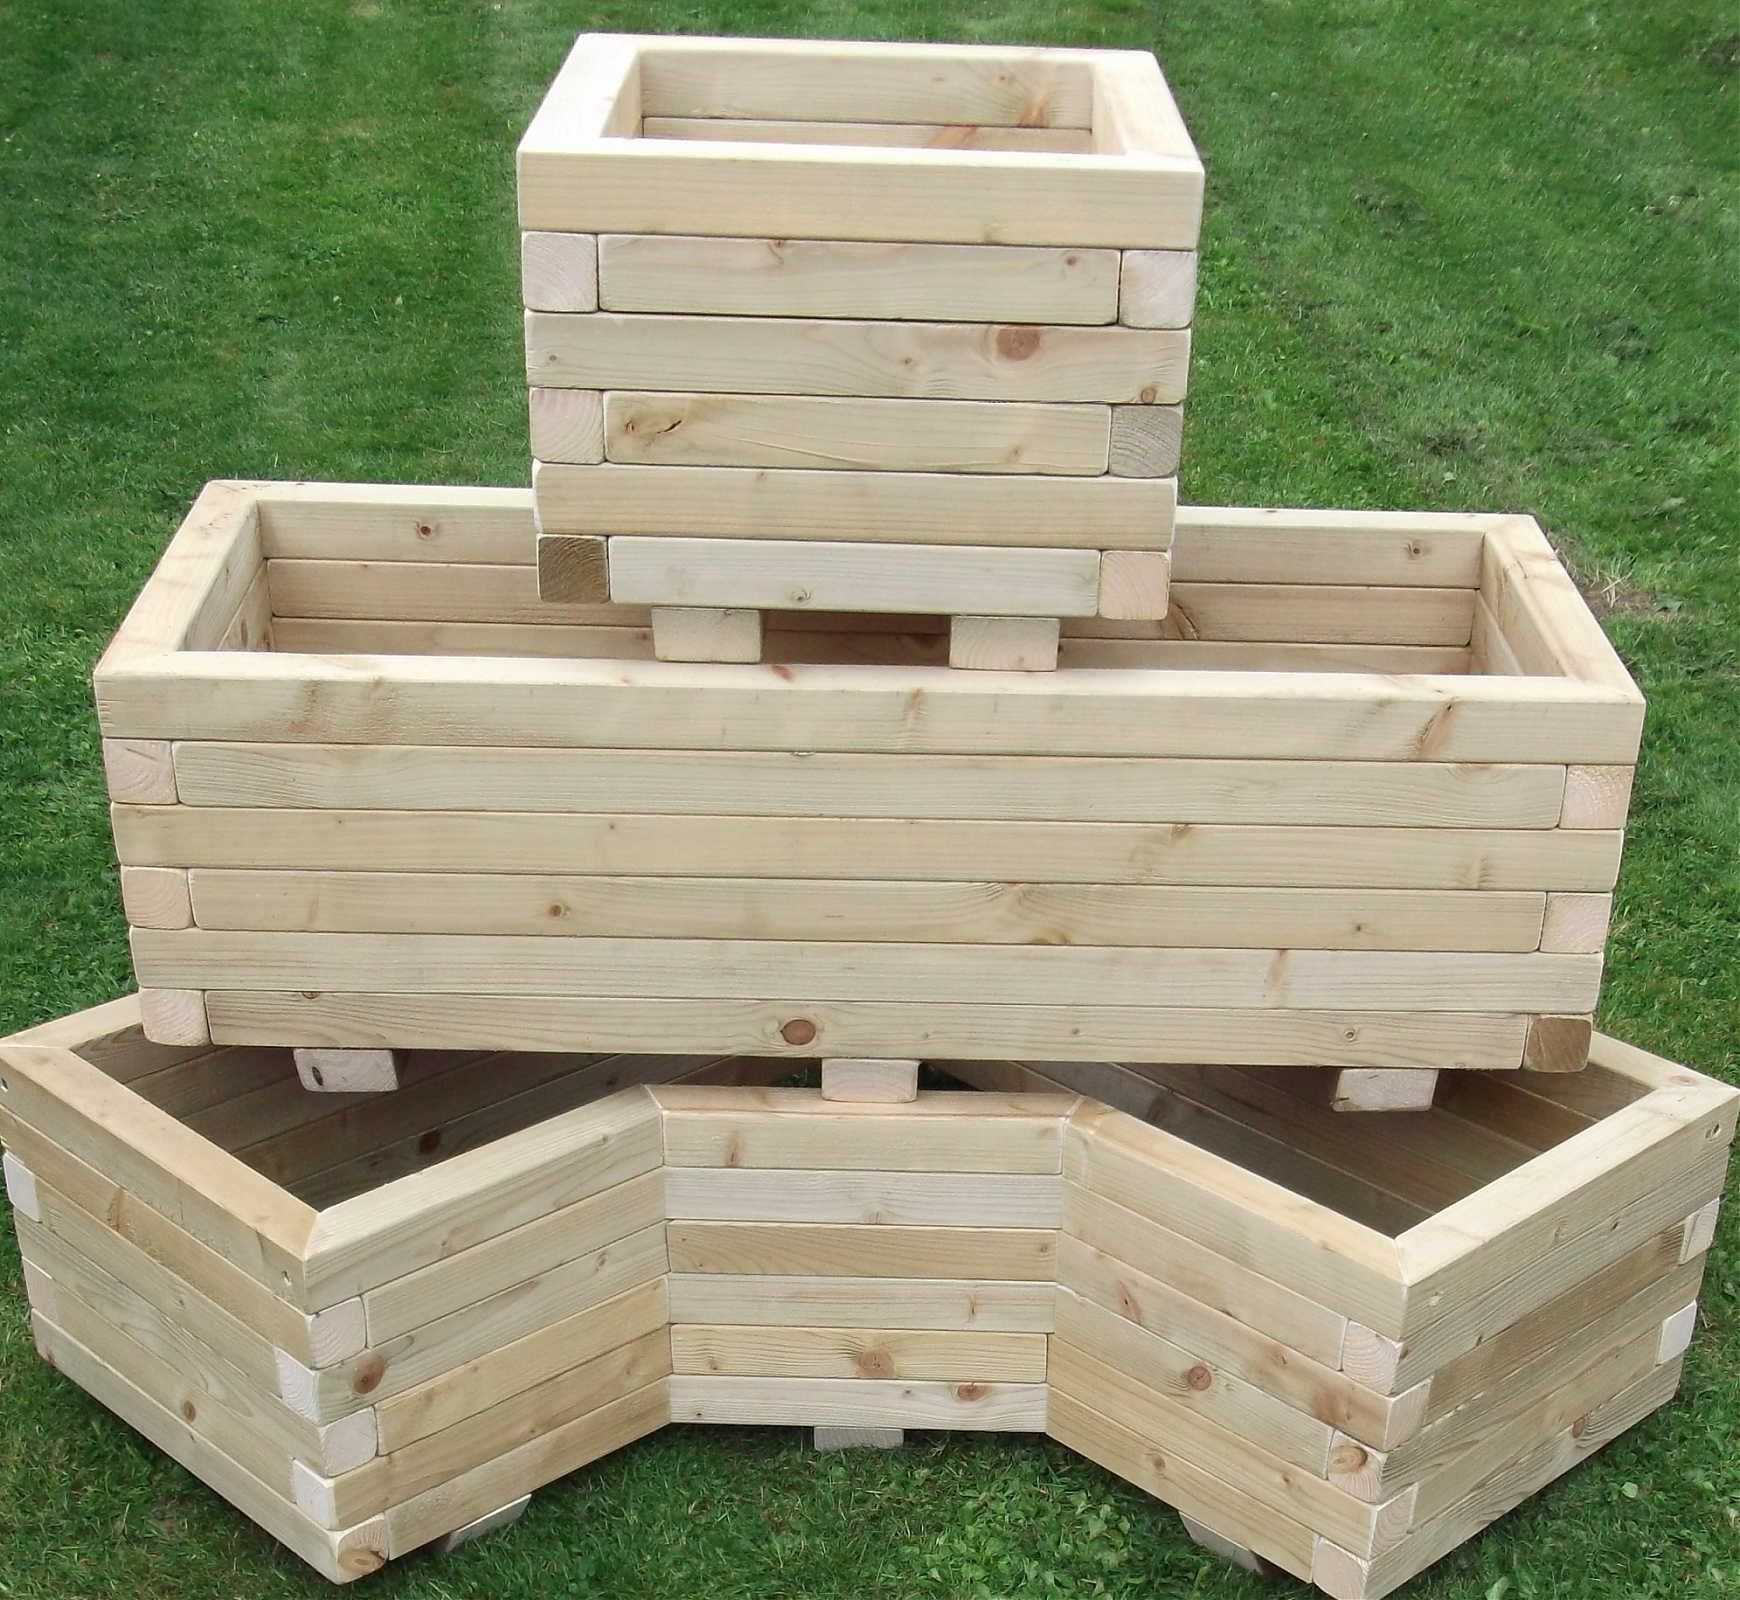 Wooden Trough Planters- Extra Wide